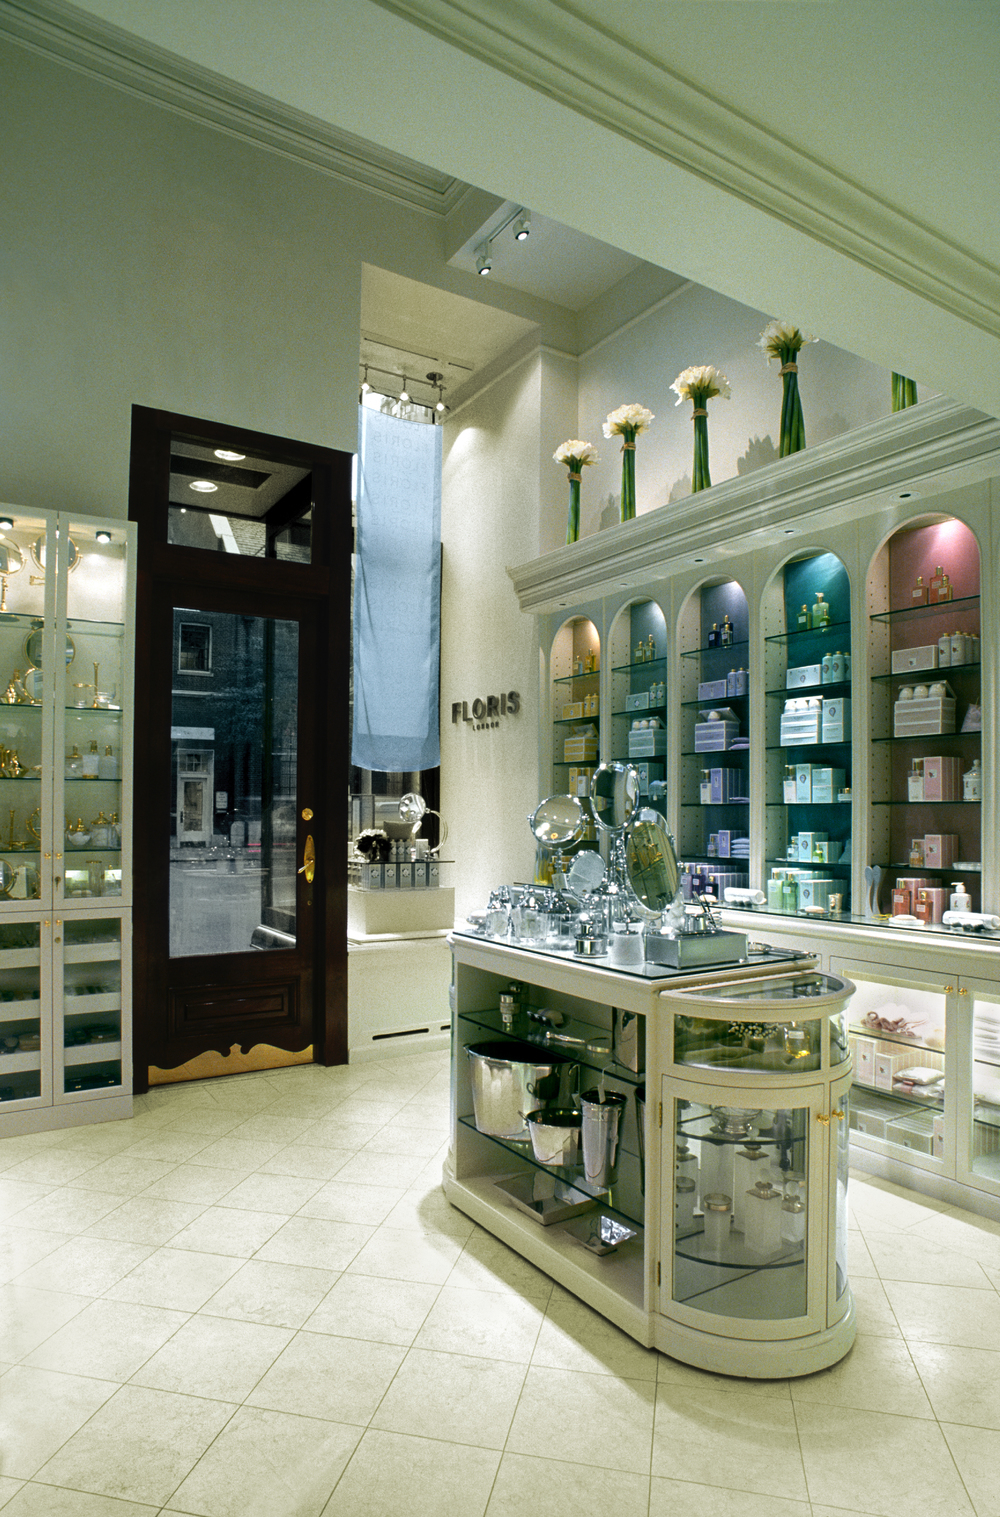 Floris of London. Tobin Parnes Design. Retail Design. Sales Area. Entry.